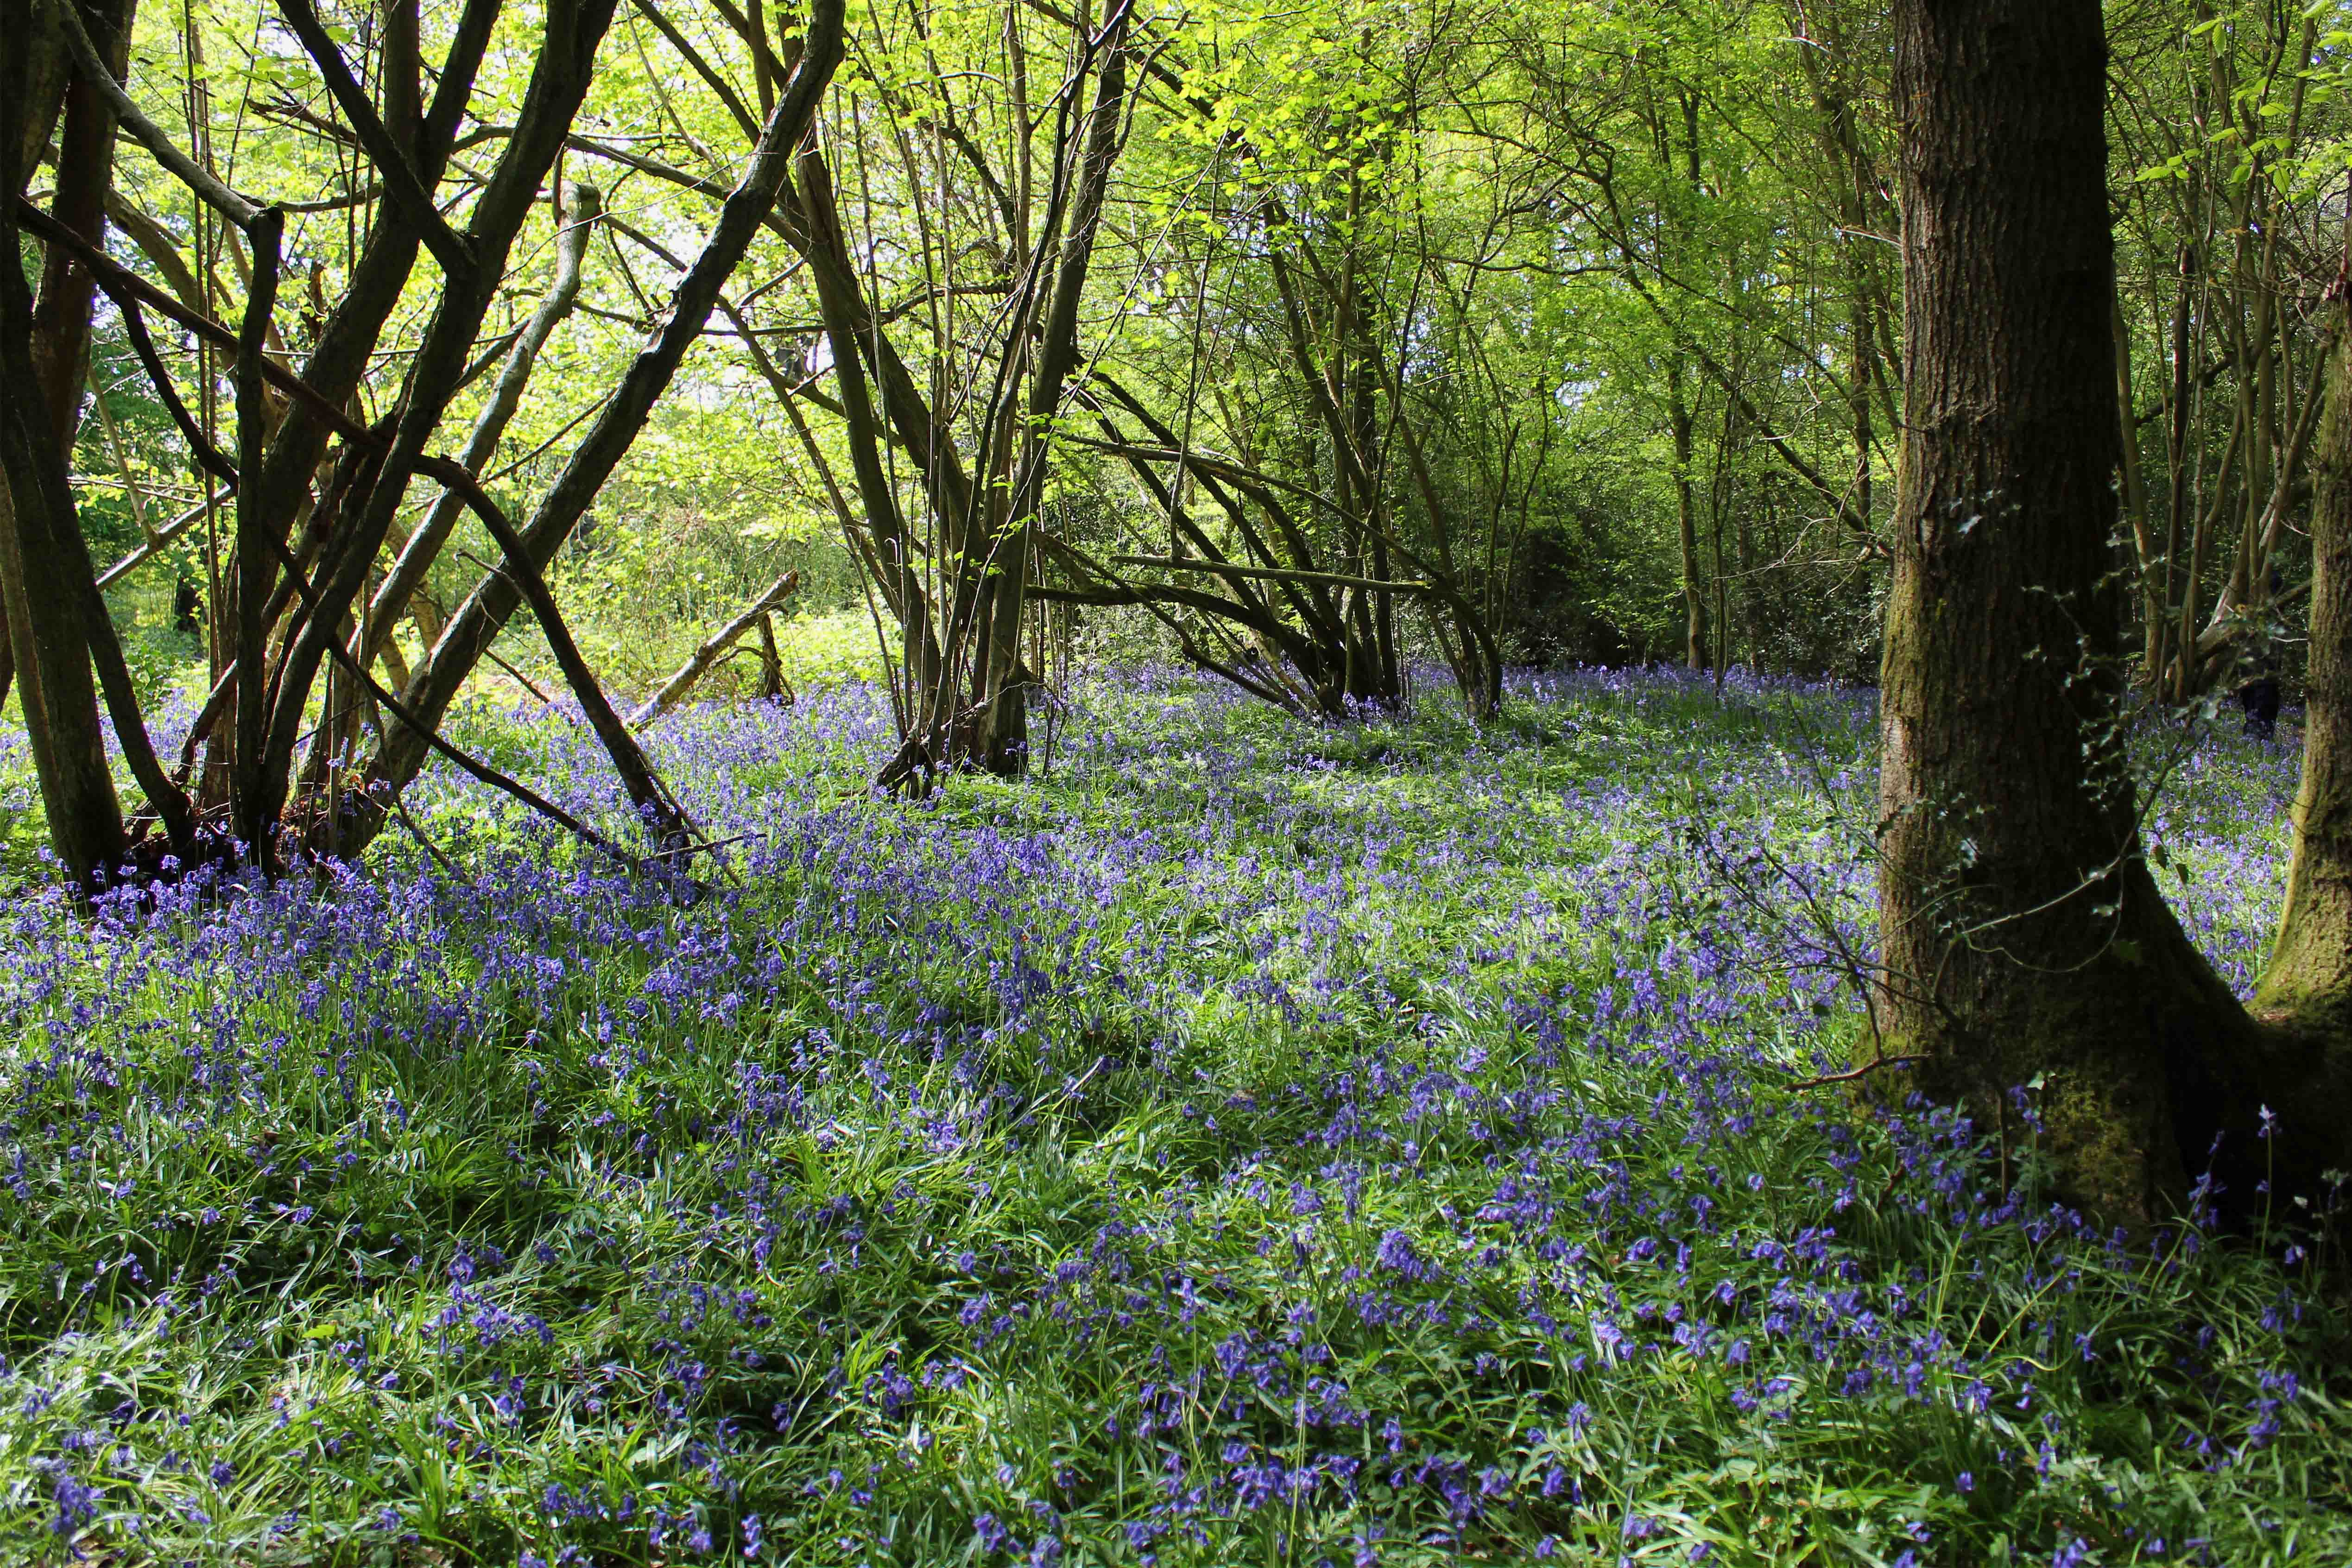 Photograph of bluebells in the woods in Bedelands Farm